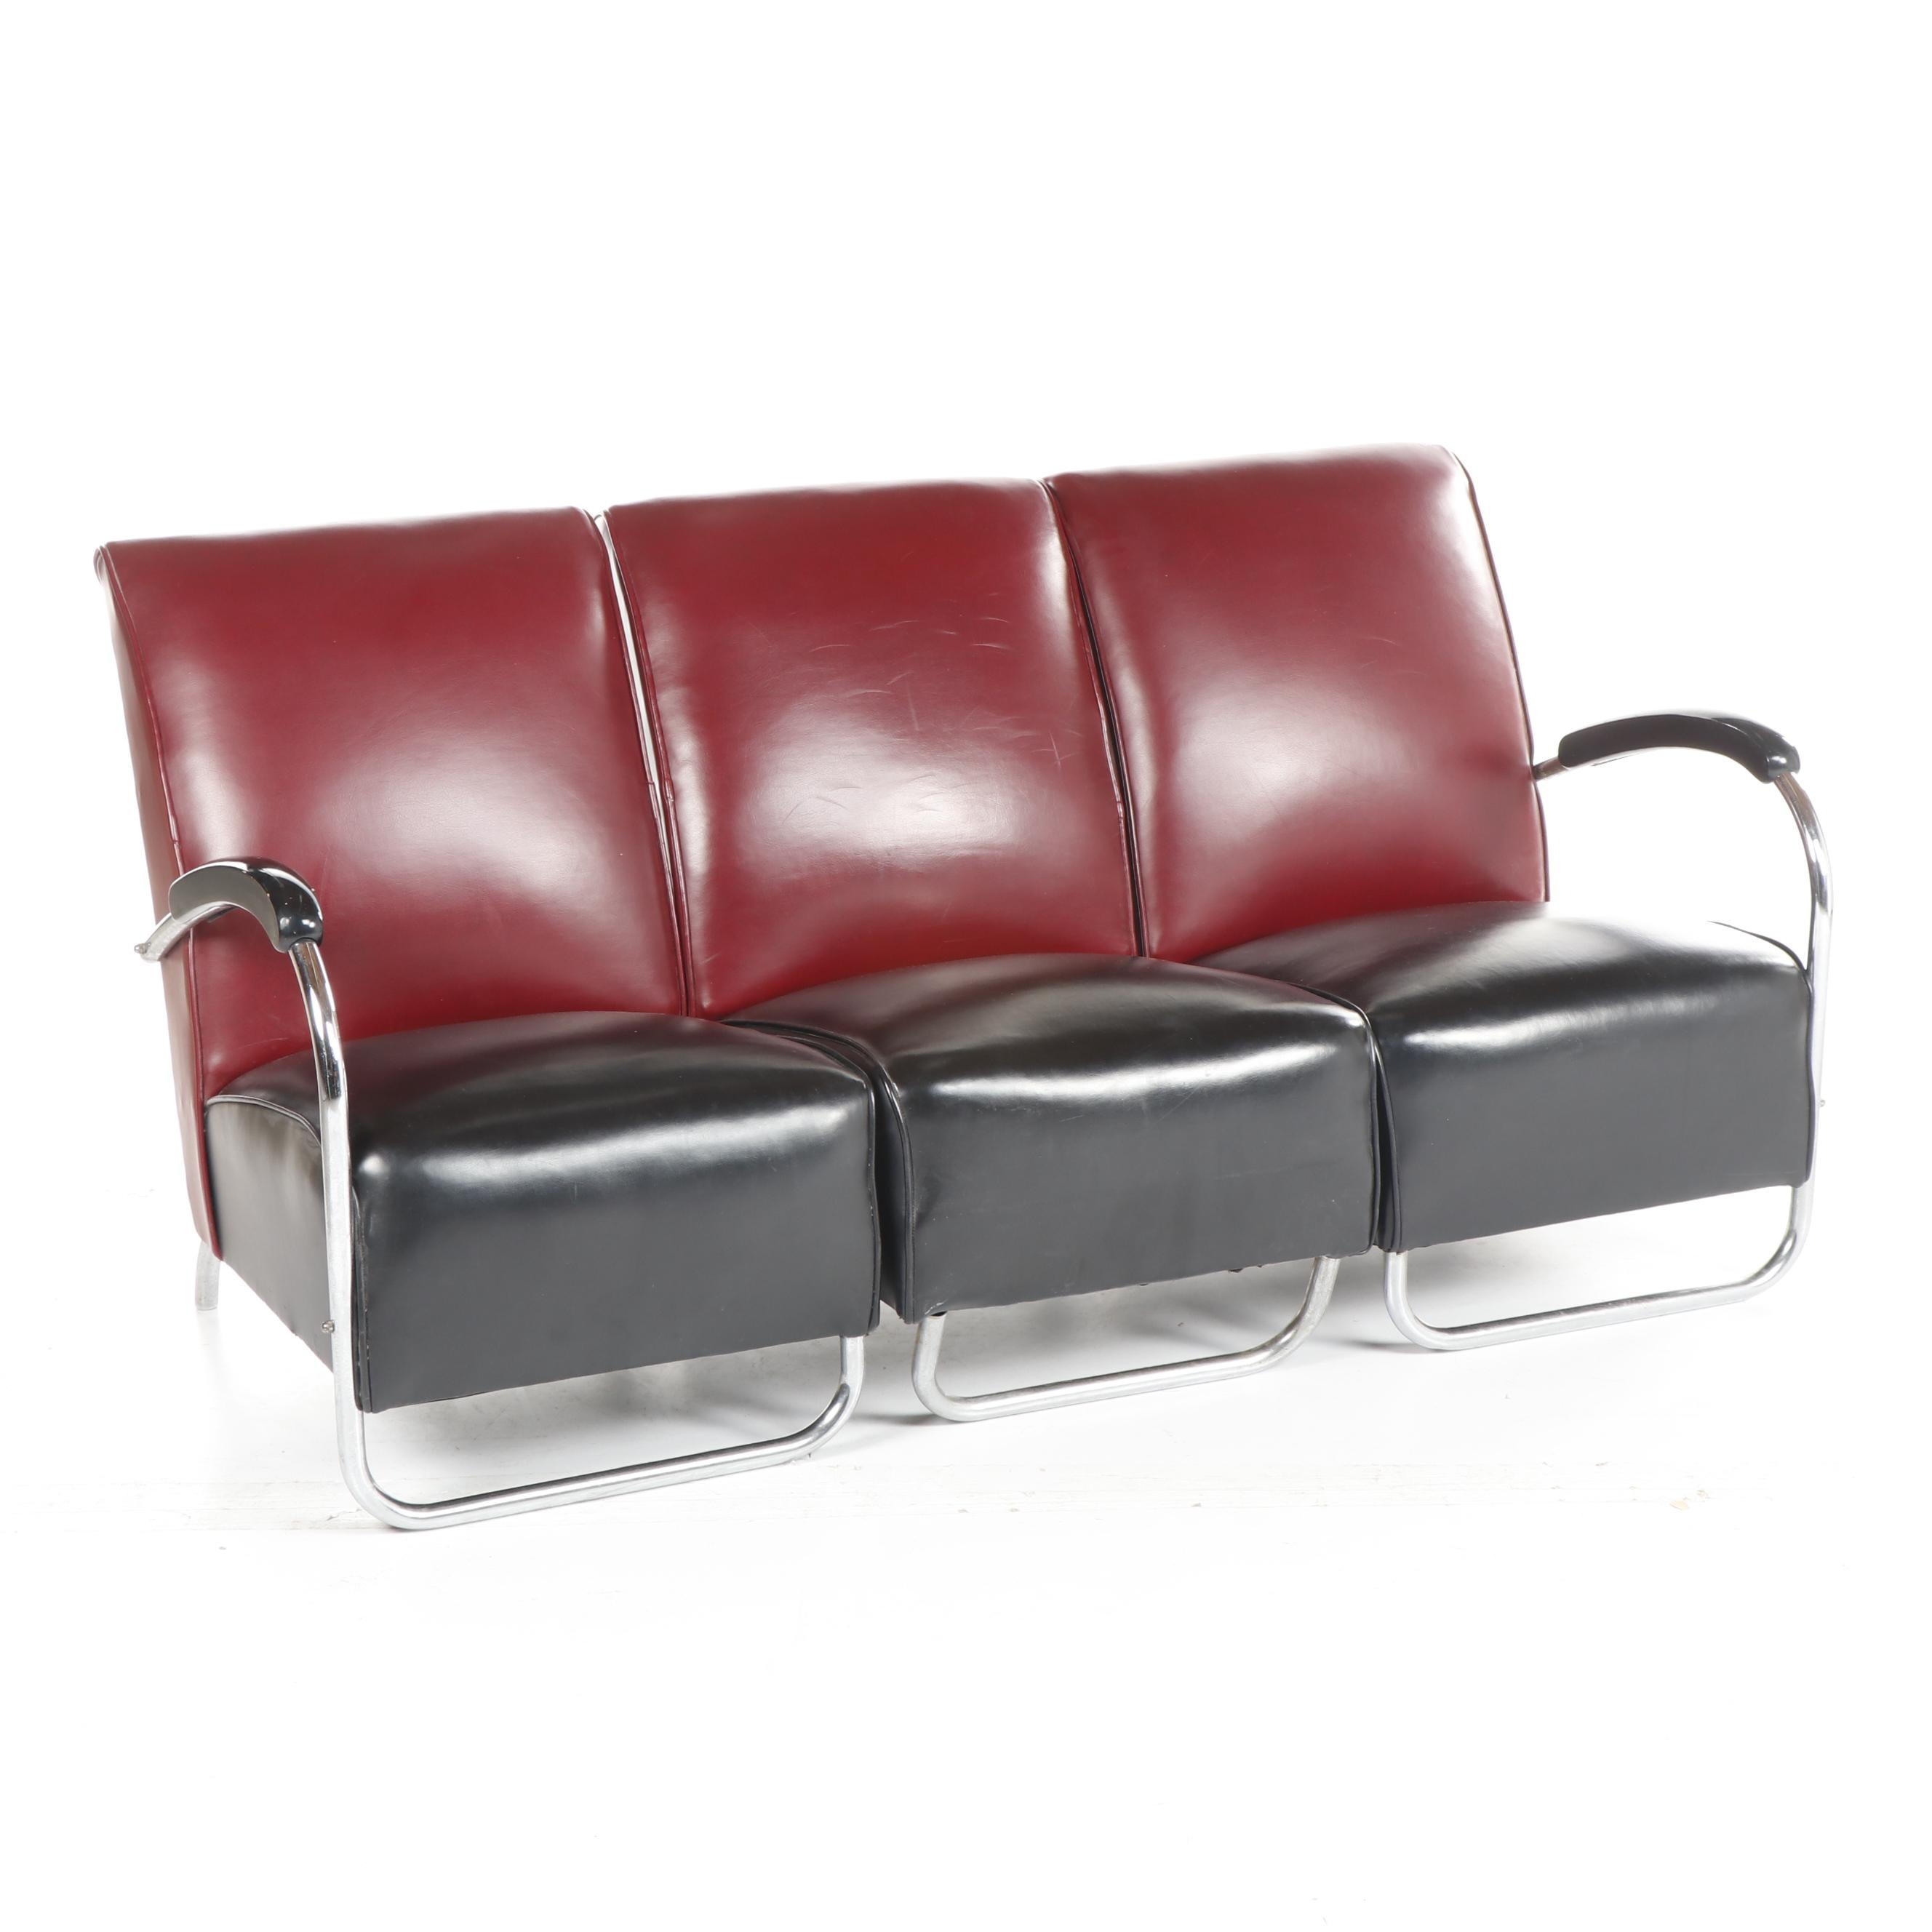 Vintage Black and Maroon Vinyl Sectional Sofa with Chrome Legs